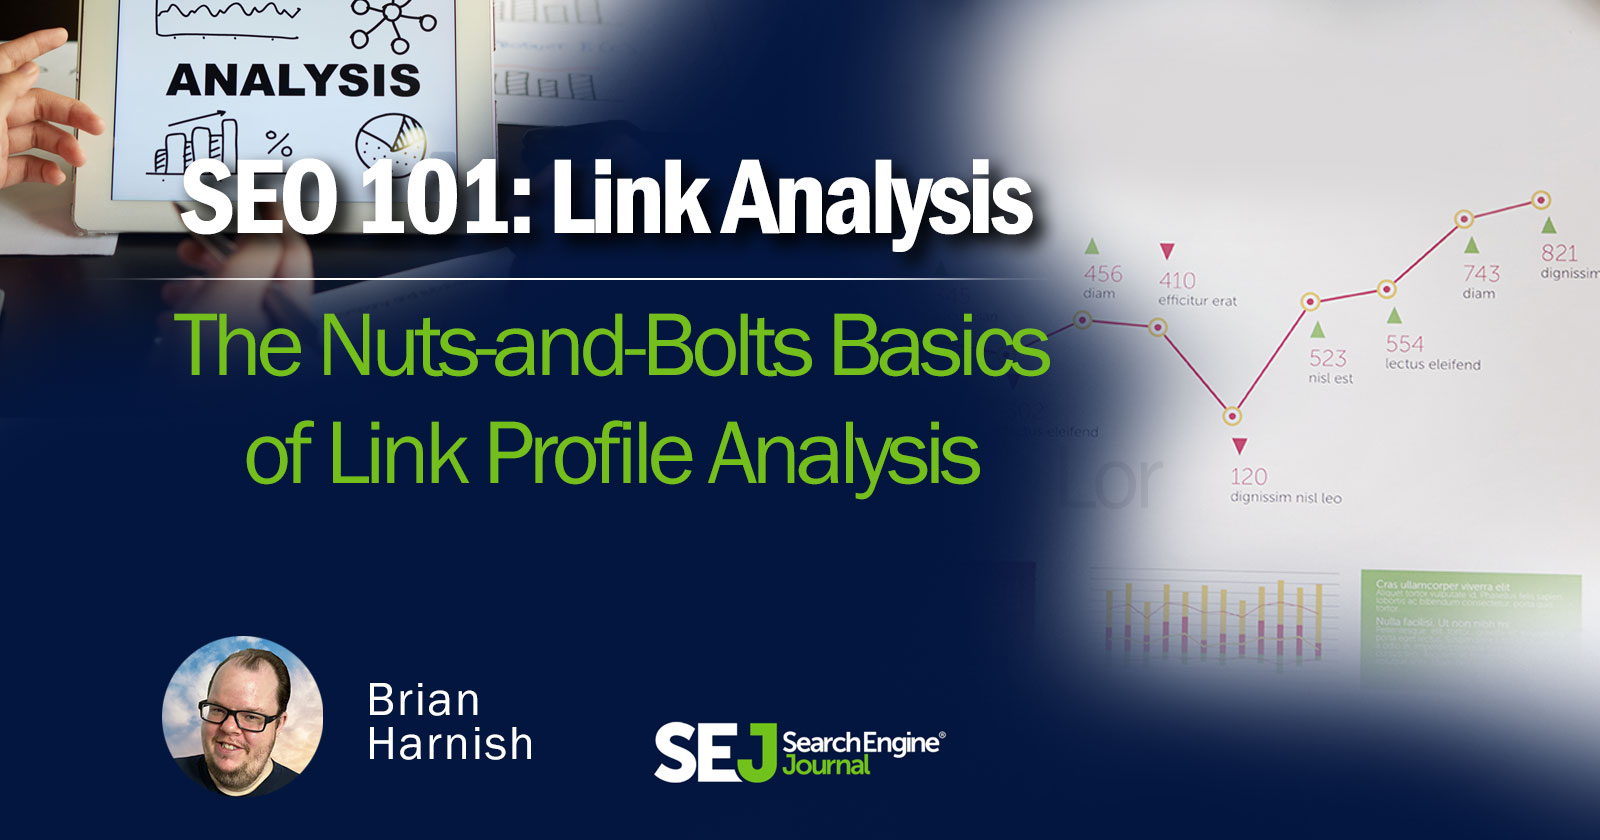 link profile analysis basics 5ec2136167811